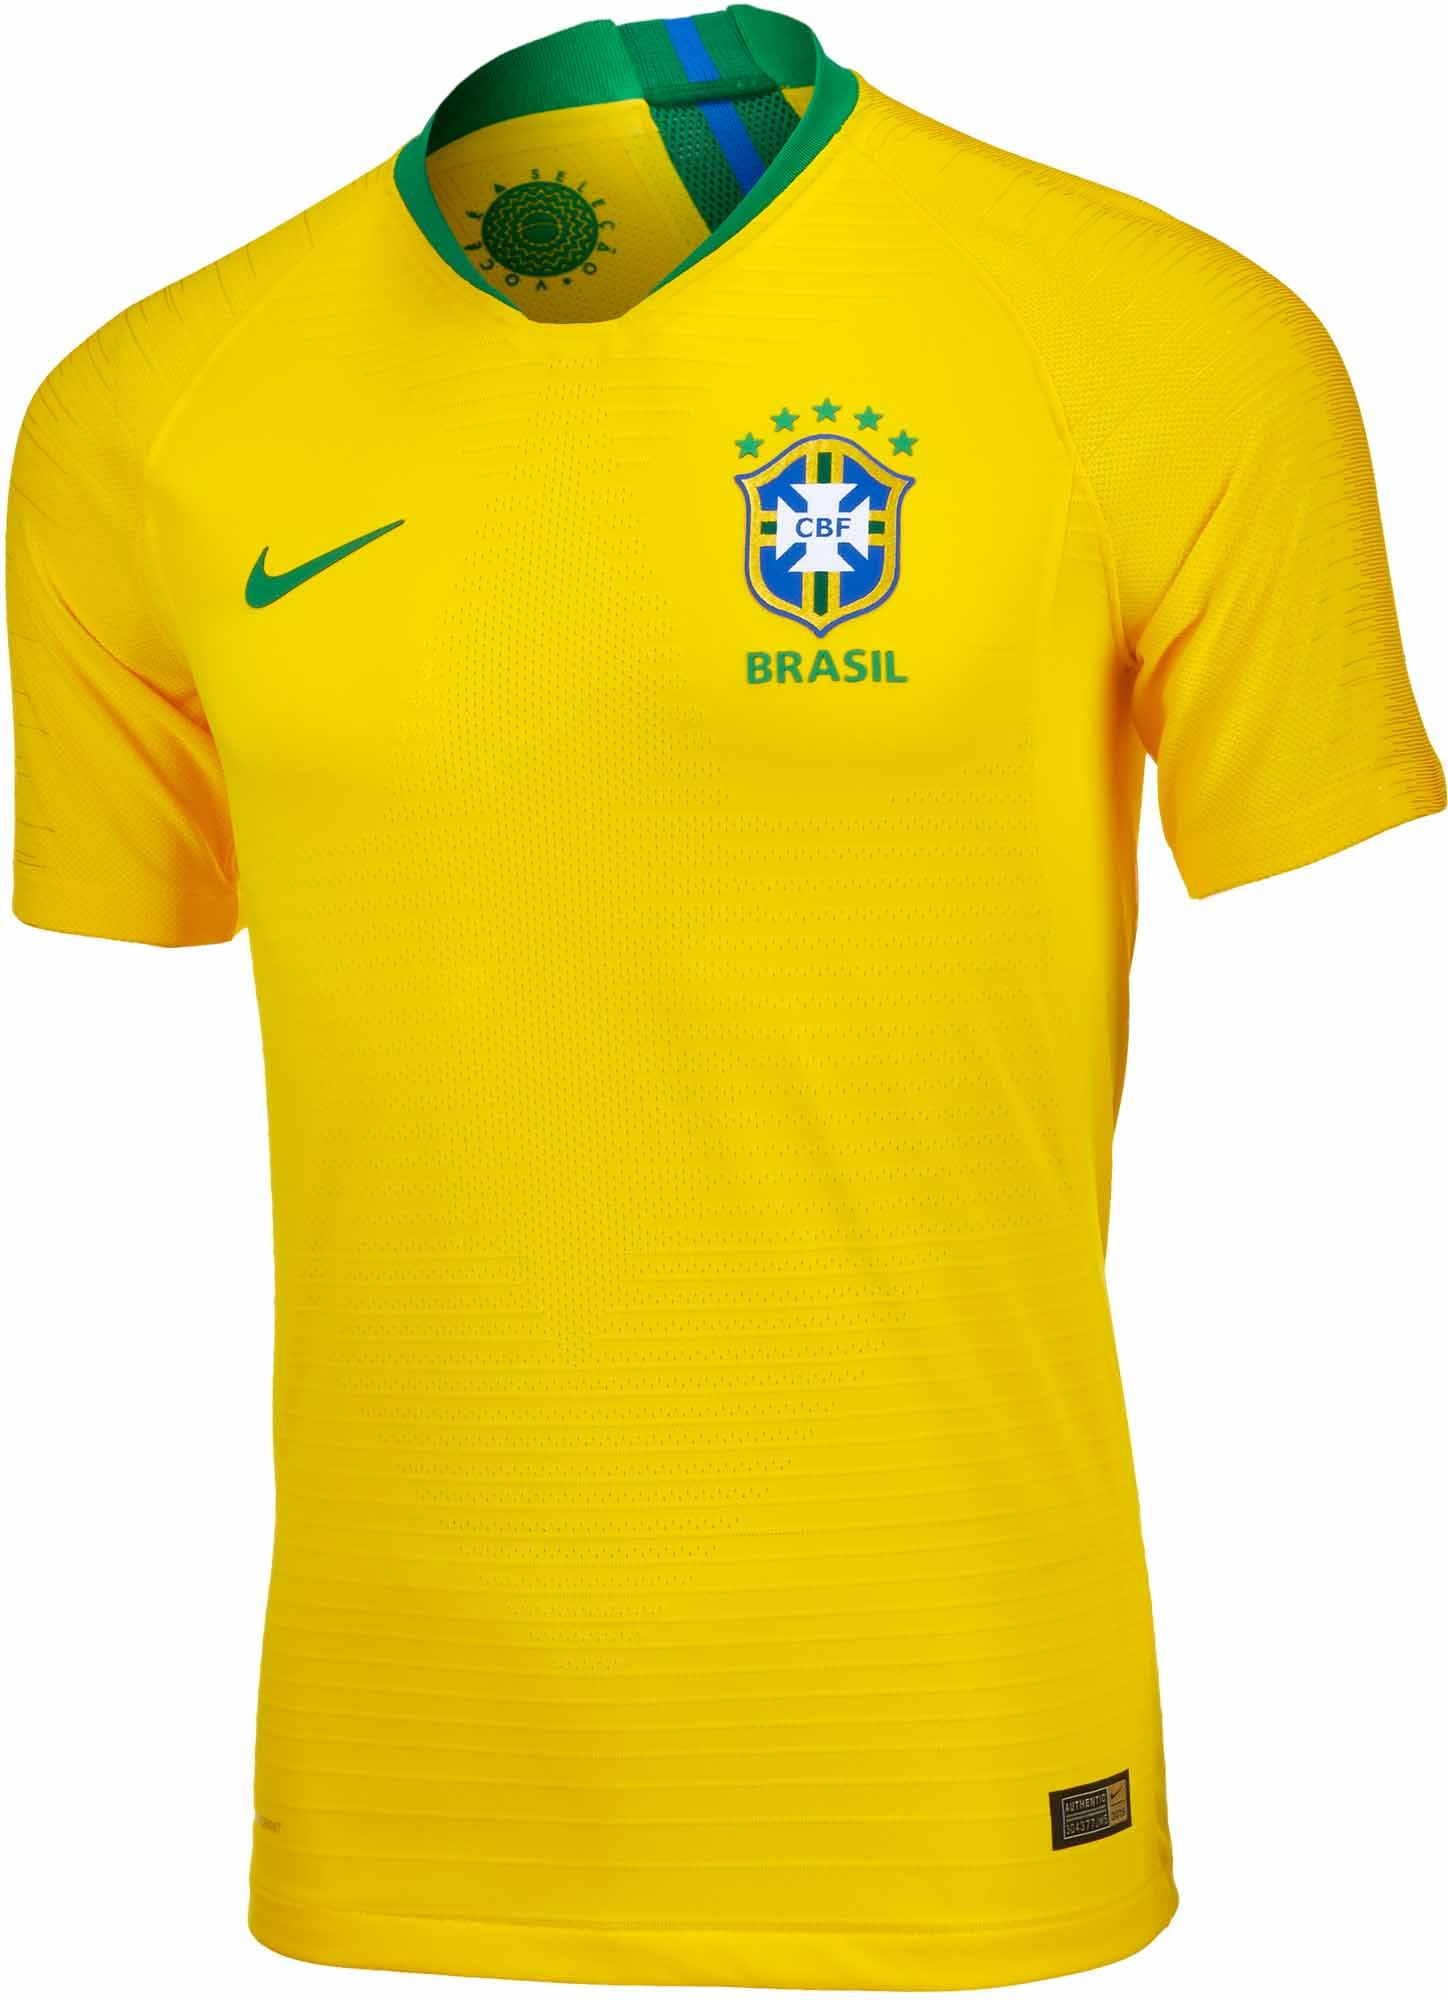 23dc9fa3624 Buy the 2018 19 Nike Brazil Home Match Jersey from soccerpro.com right now!